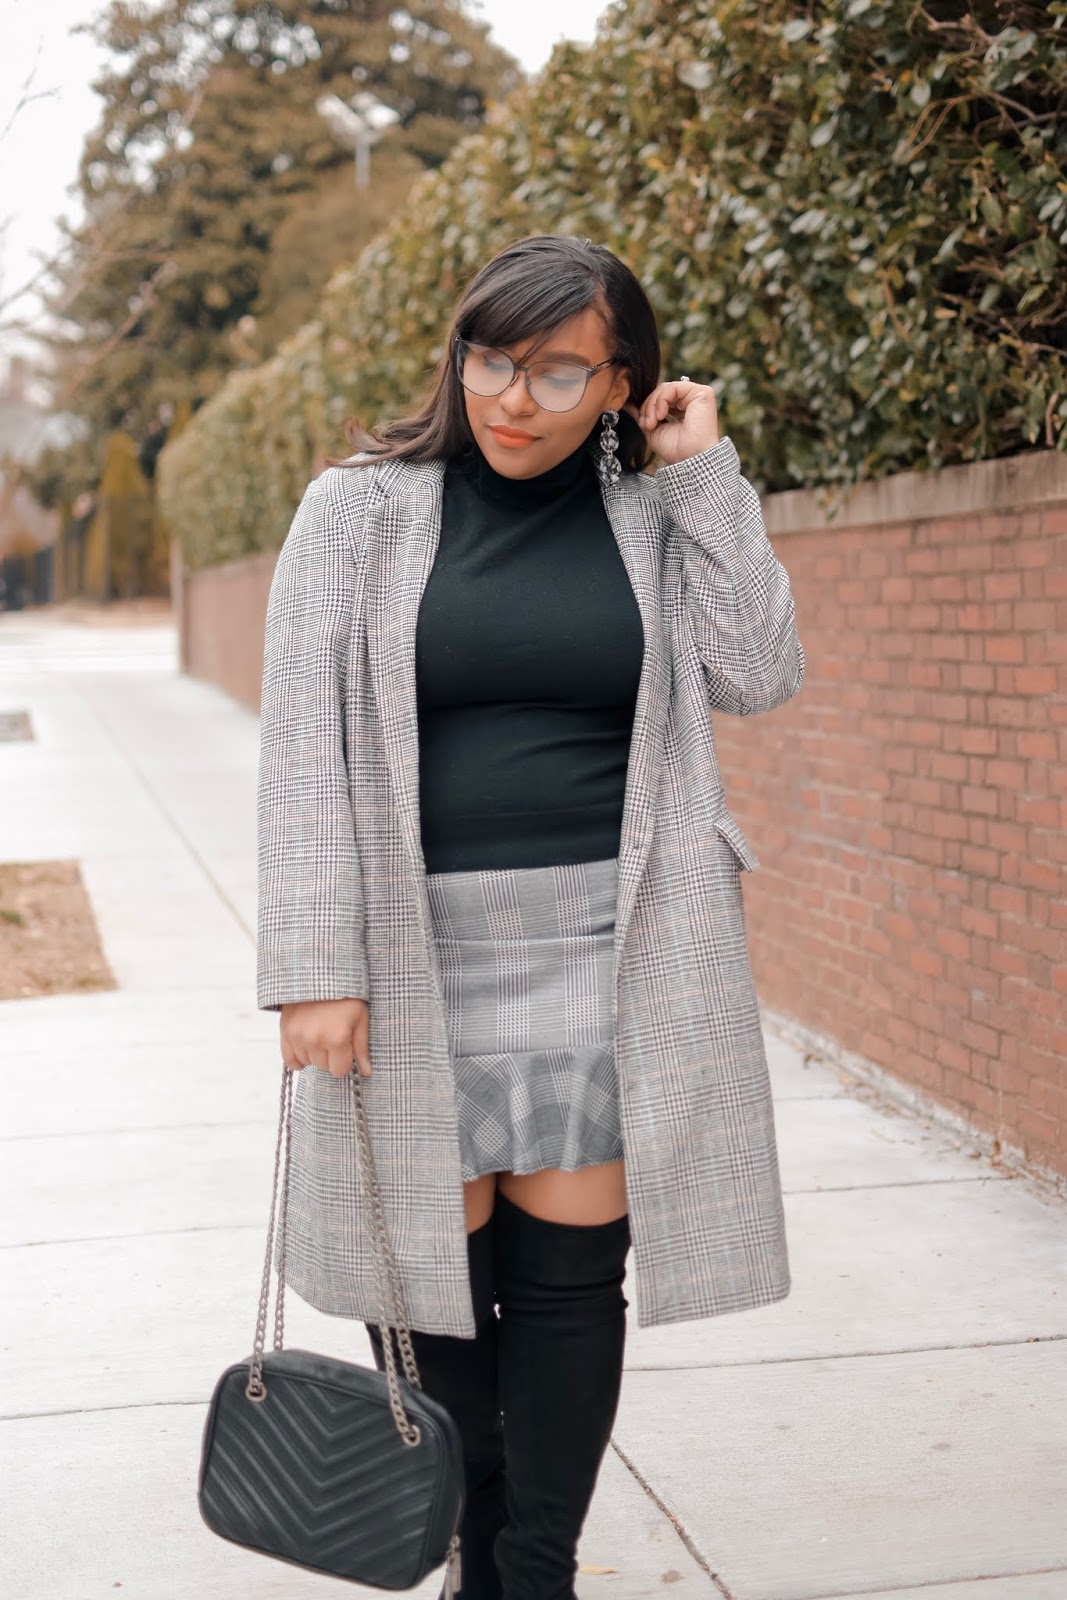 mom bloggers, dc bloggers, winter outfits, otk boots, wide calf boots, fall outfit ideas